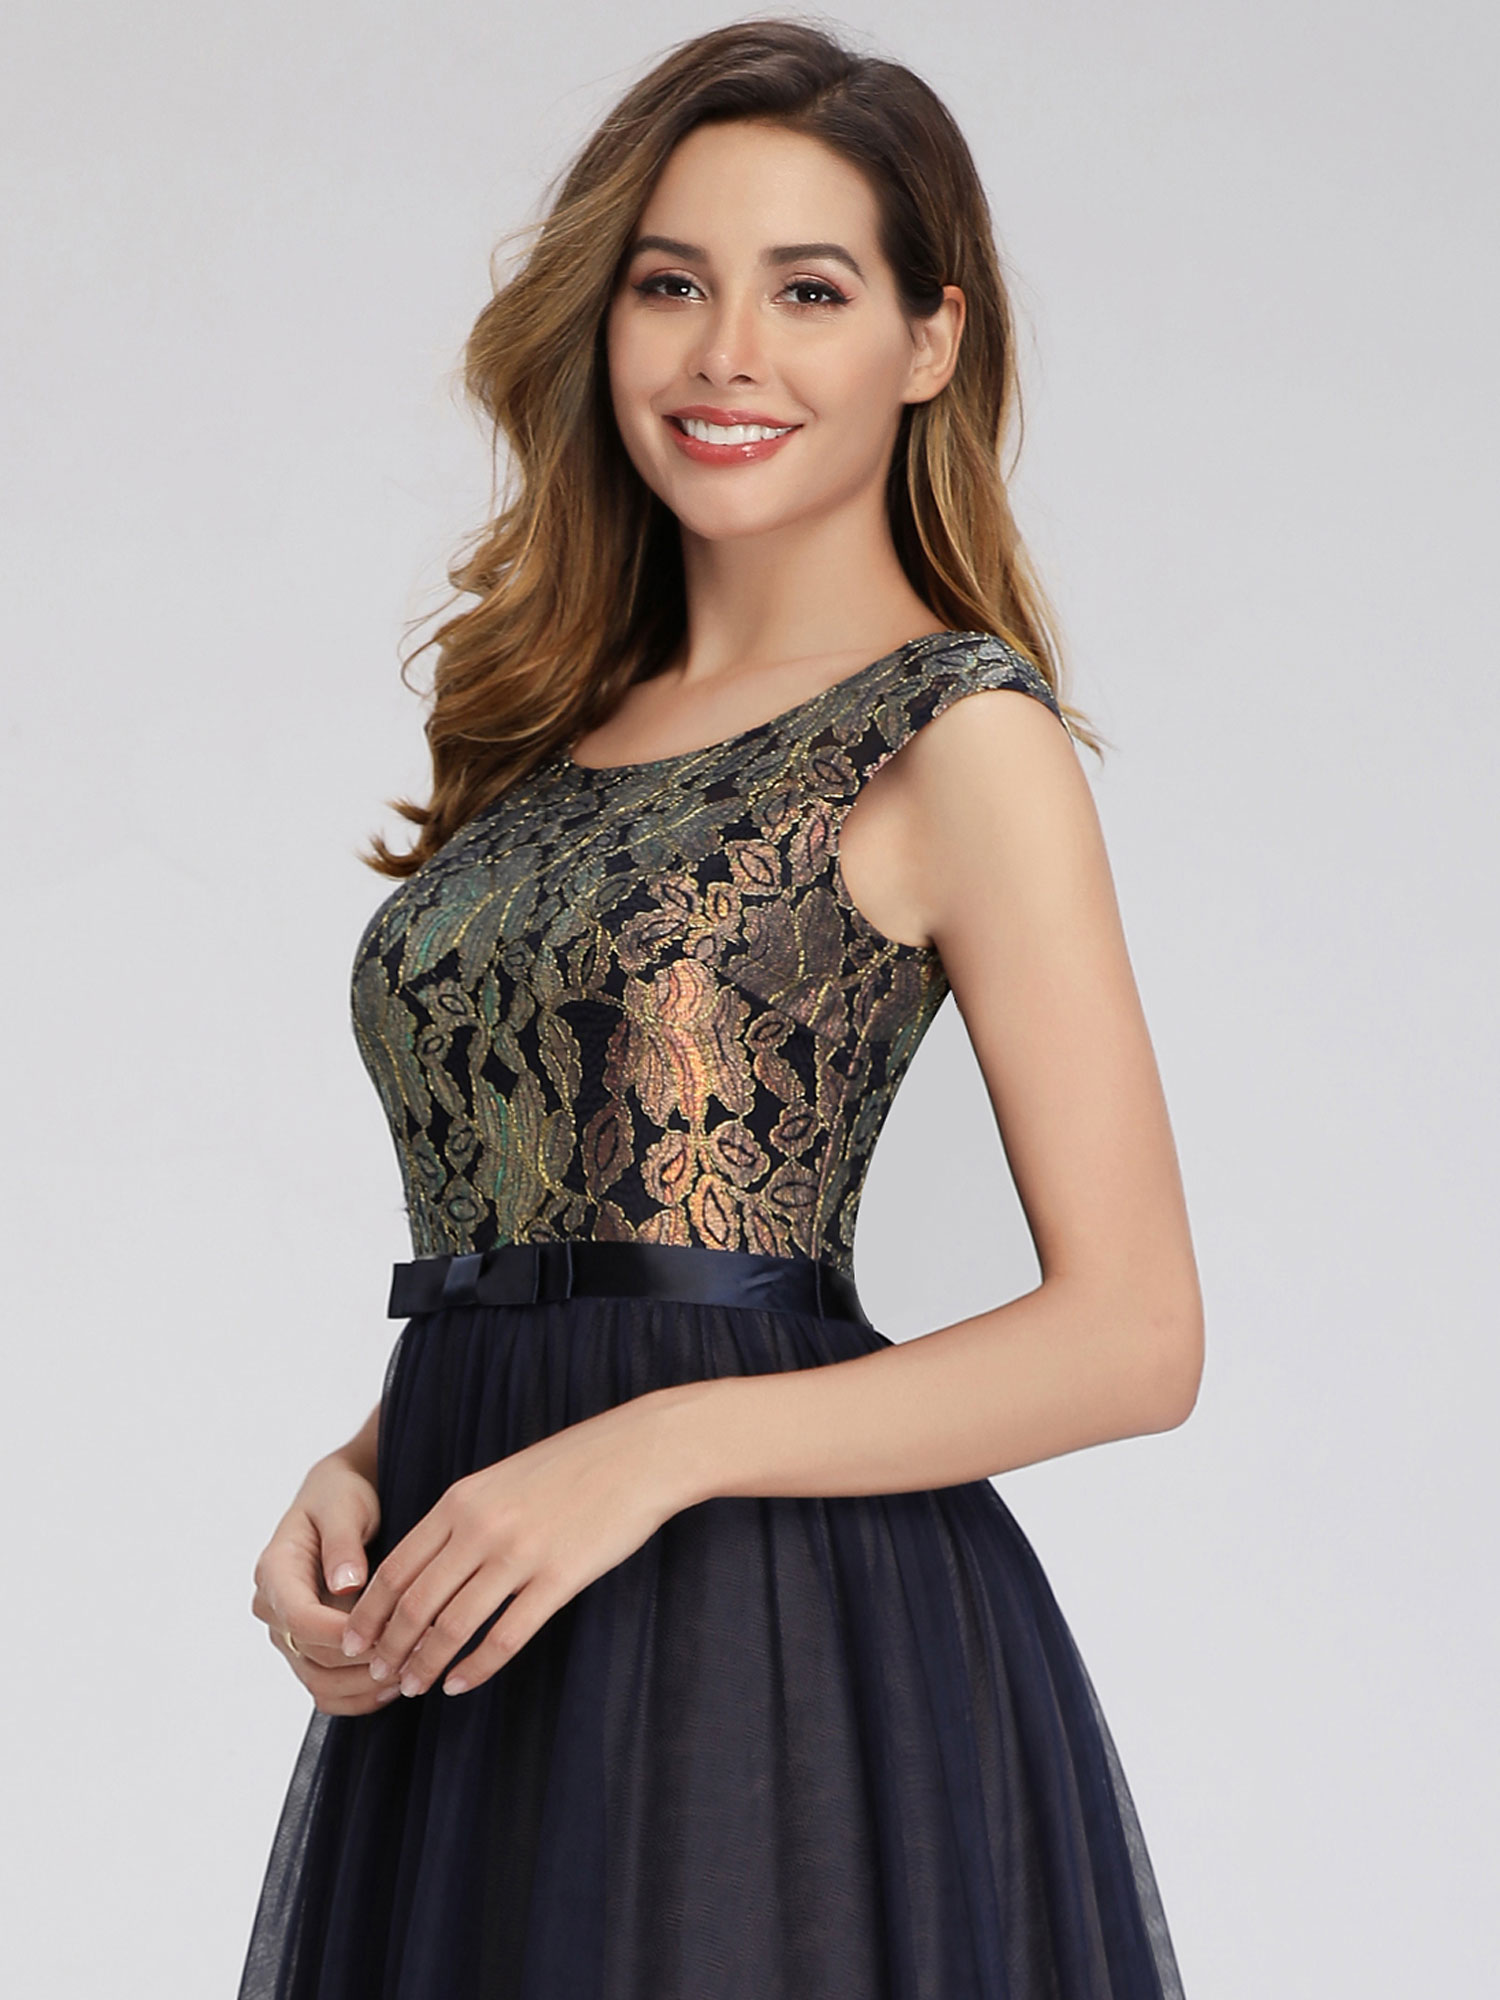 Ever-pretty-Formal-A-line-Evening-Gowns-Cocktail-Long-Lace-Homecoming-Prom-Dress thumbnail 8